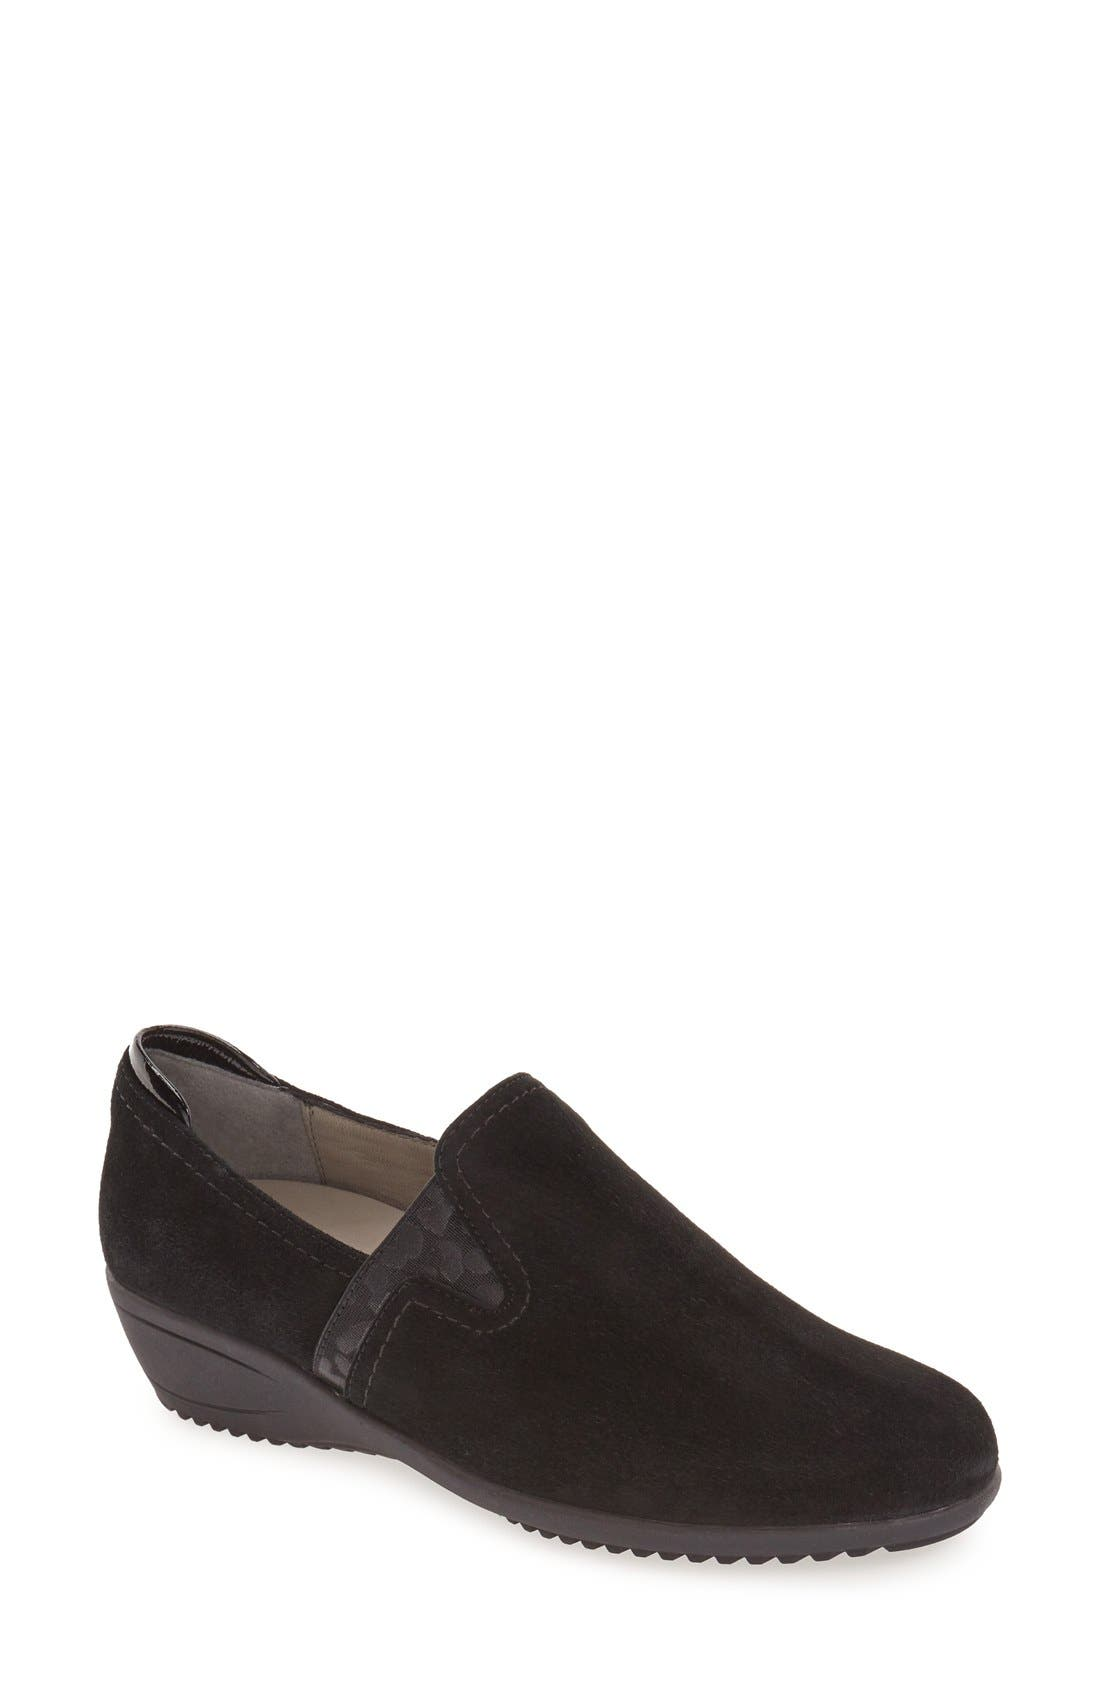 'Lilli' Wedge Loafer,                         Main,                         color, 001